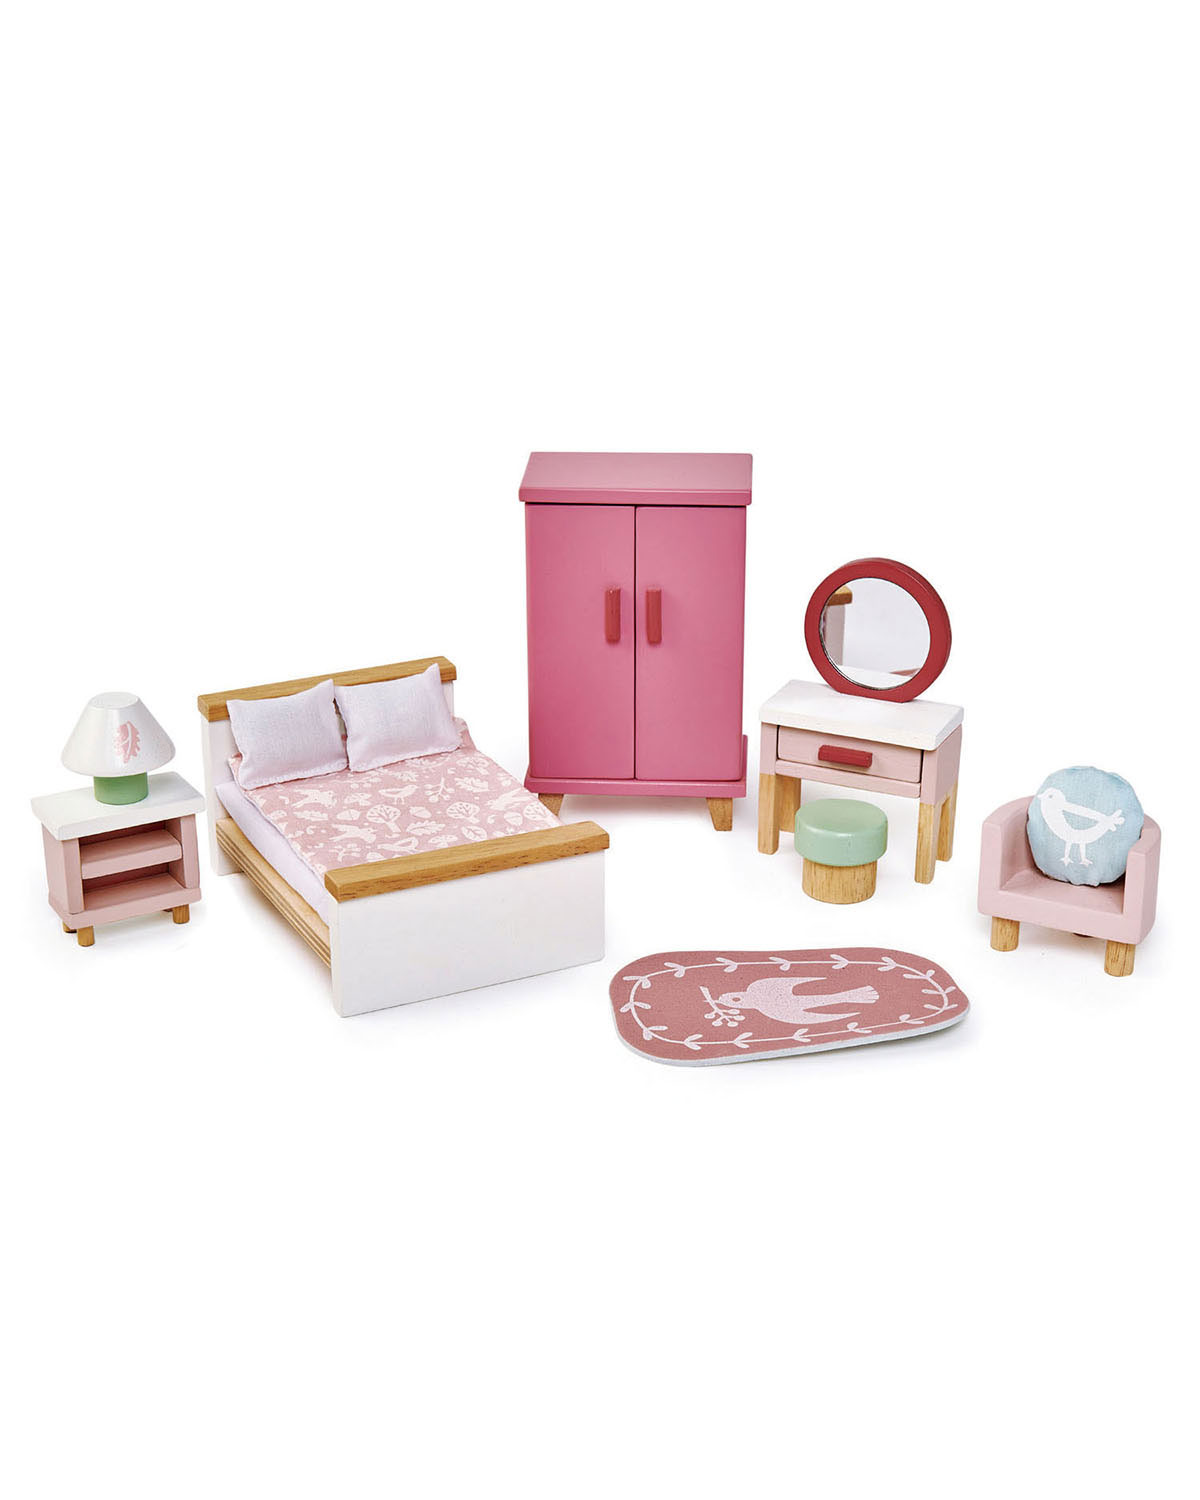 Tender Leaf Toys Dovetail Bedroom Play Set